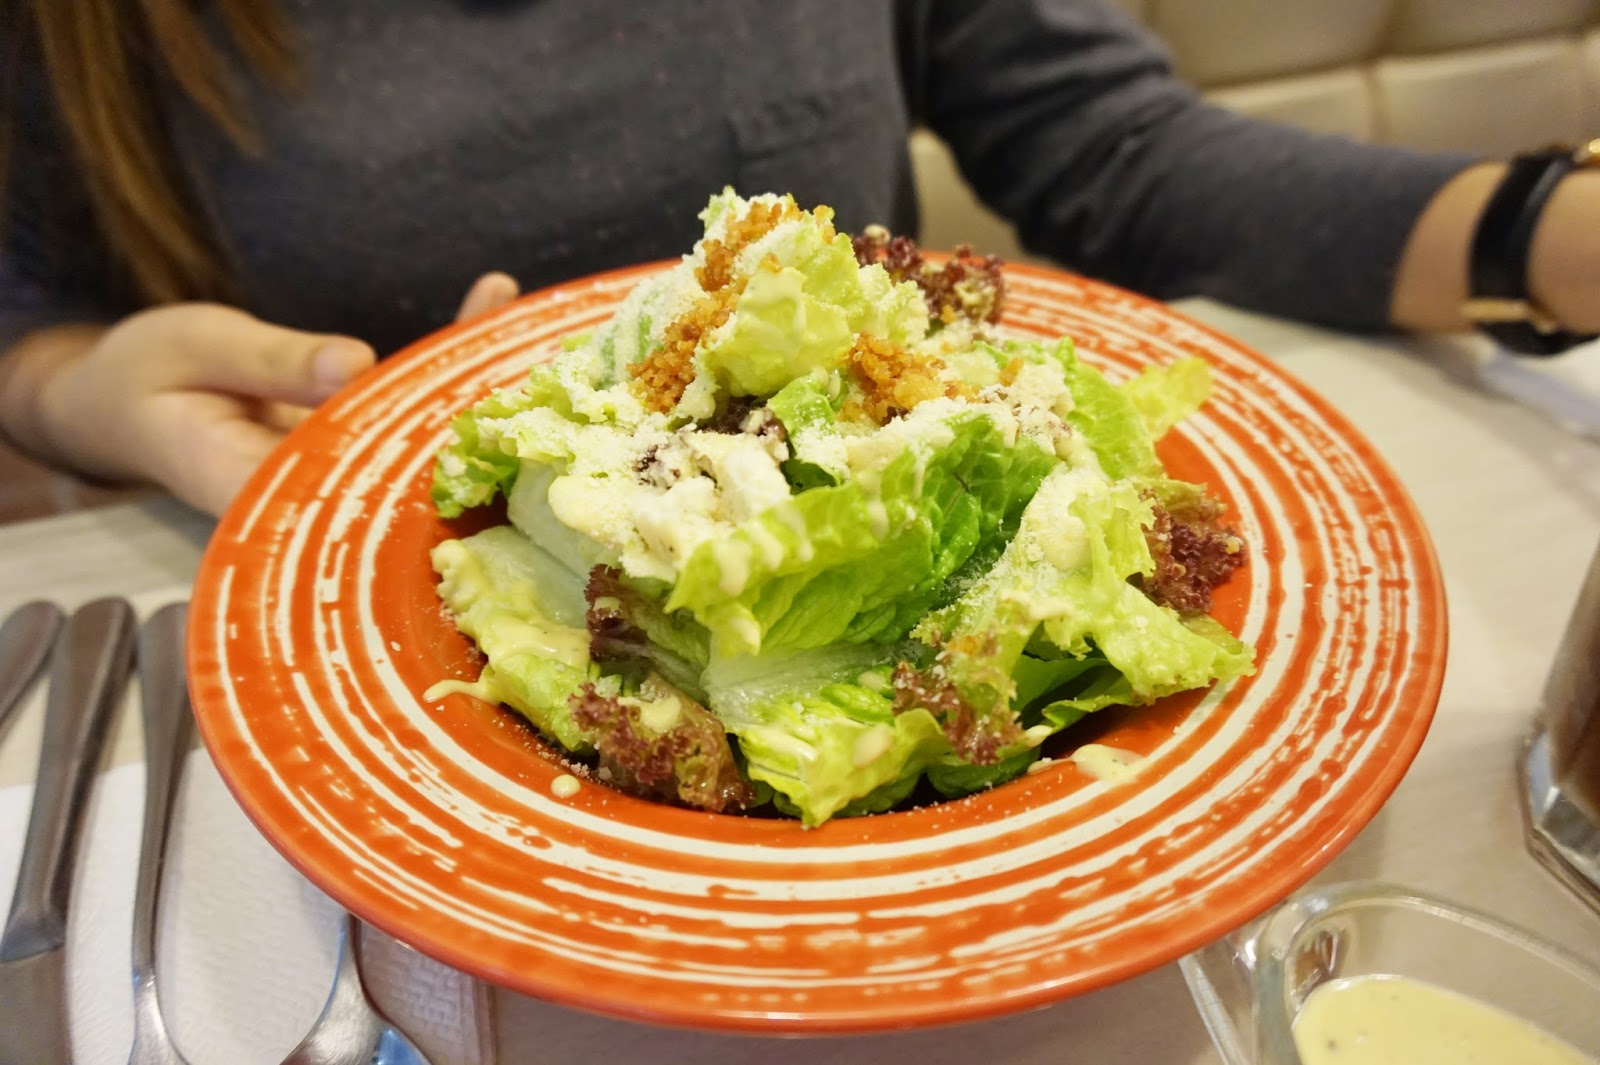 my little buttercup bakery and cafe's ceasar salad